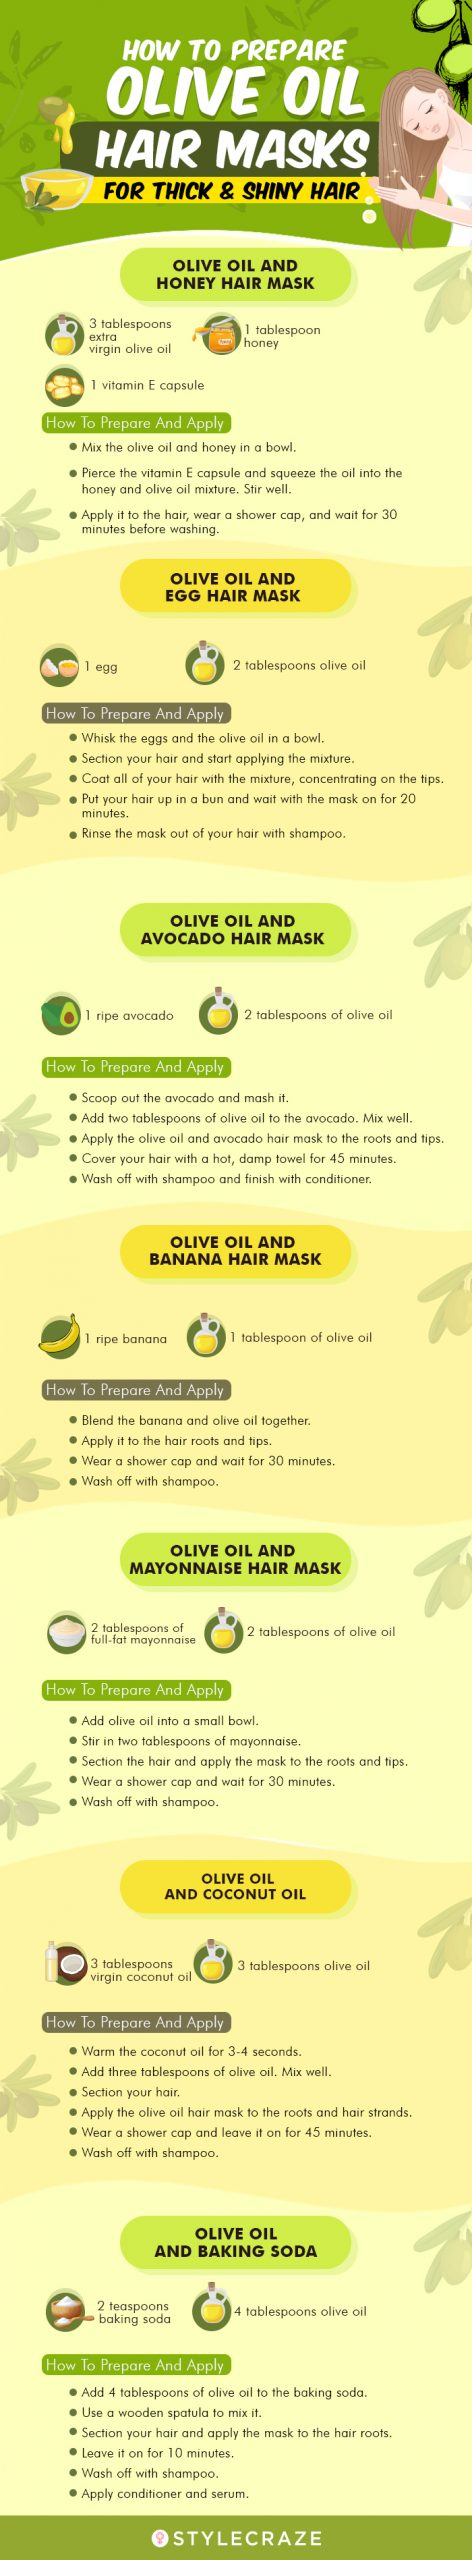 7 Best Olive Oil Hair Masks For Thick And Shiny Hair